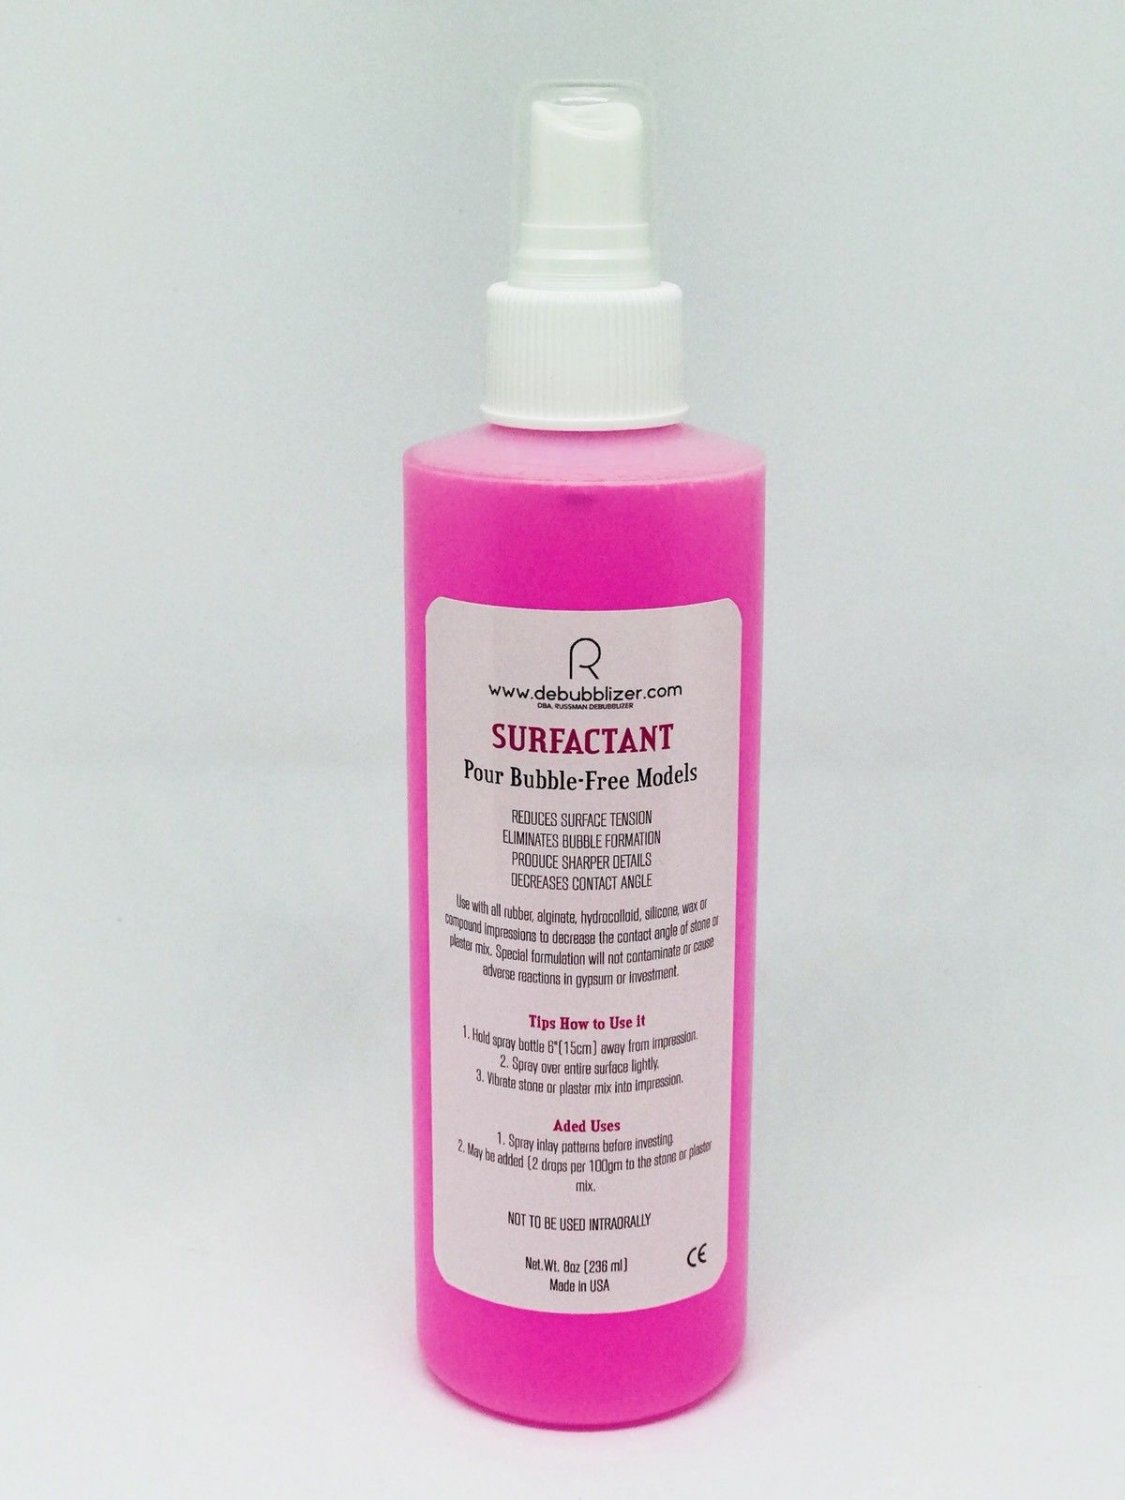 DeBubblizer-Surfactant, 8oz(236ml) spray Bottle Made in USA